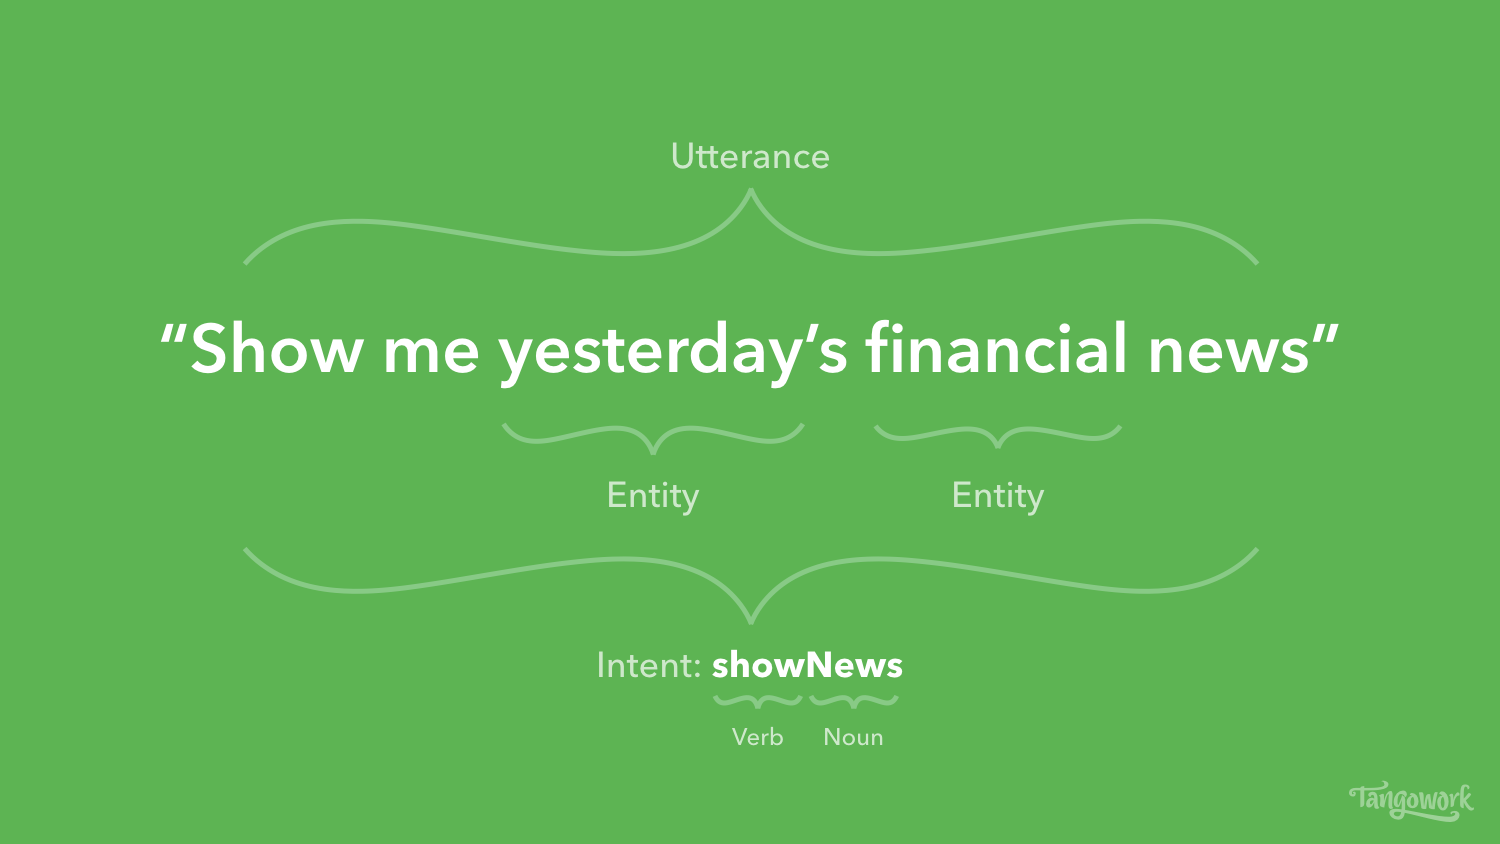 """Example utterance for a chatbot """"Show me yesterday's financial news"""""""